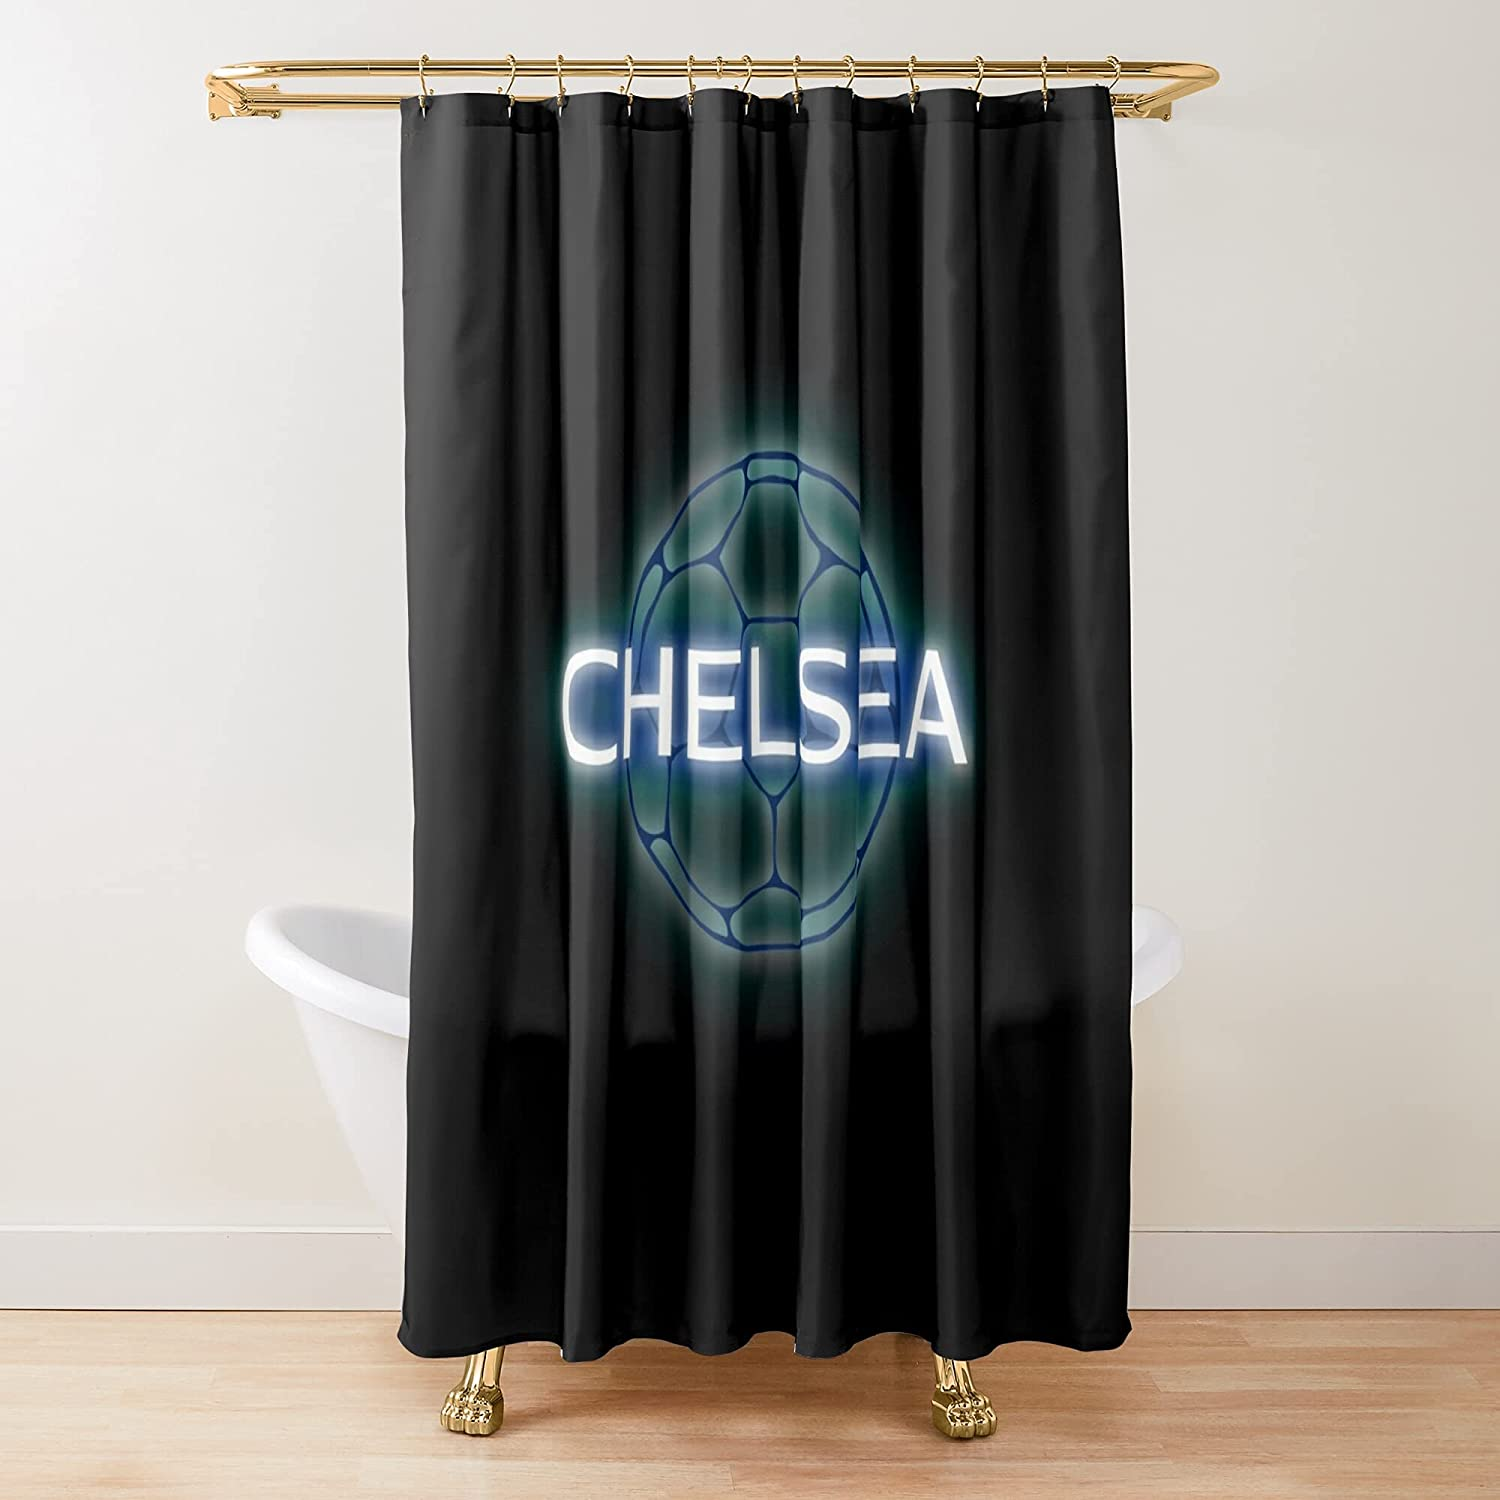 Chelsea Football Neon Glow Badge Curtains Fabric Printed 35% OFF Shower OFFicial shop